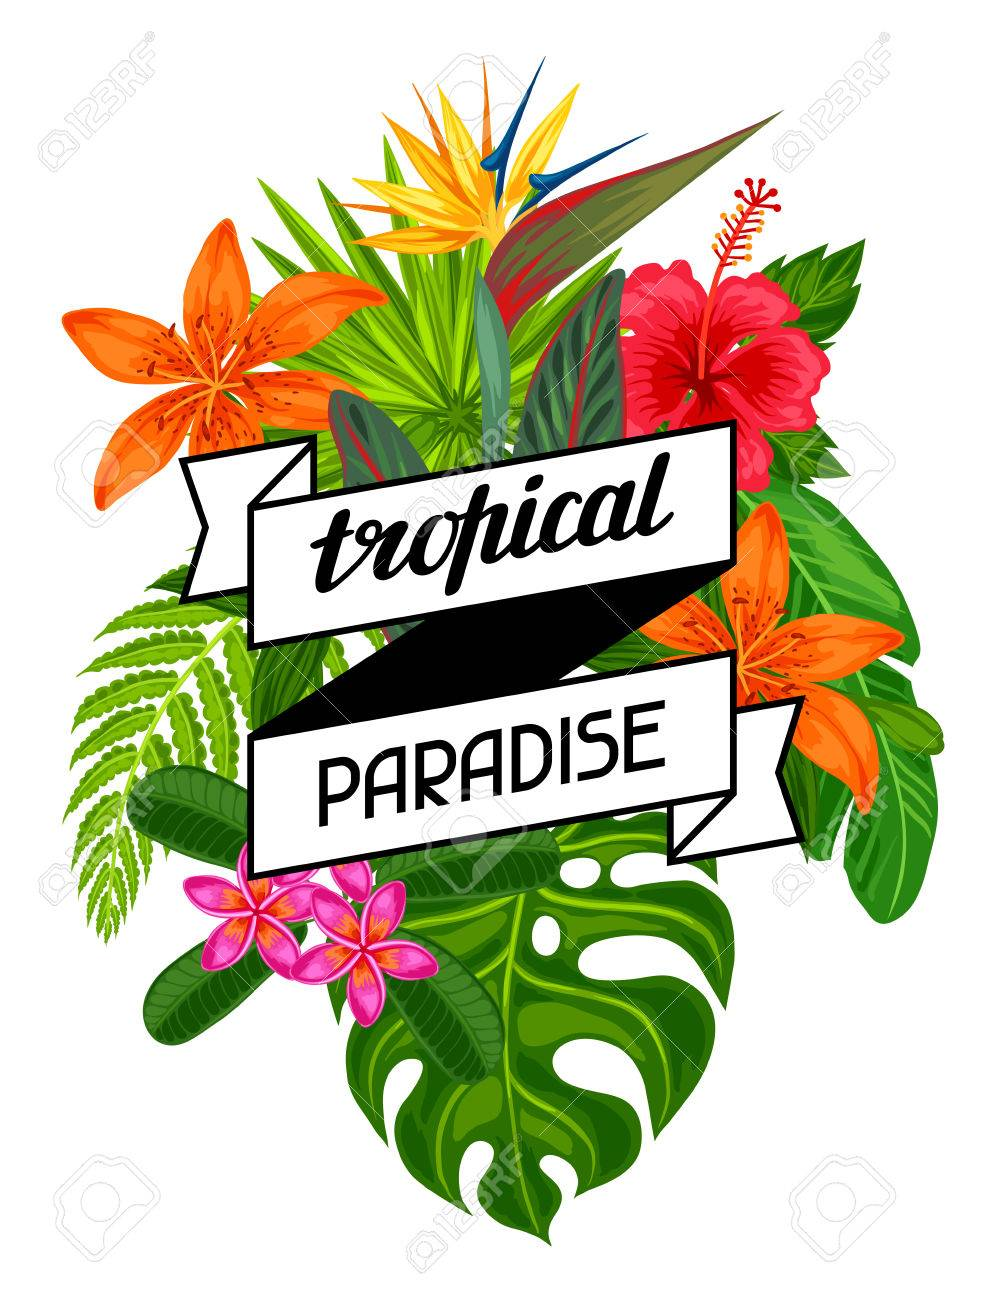 Tropical paradise card with stylized leaves and flowers. Image for advertising booklets, banners, flayers. - 55577787